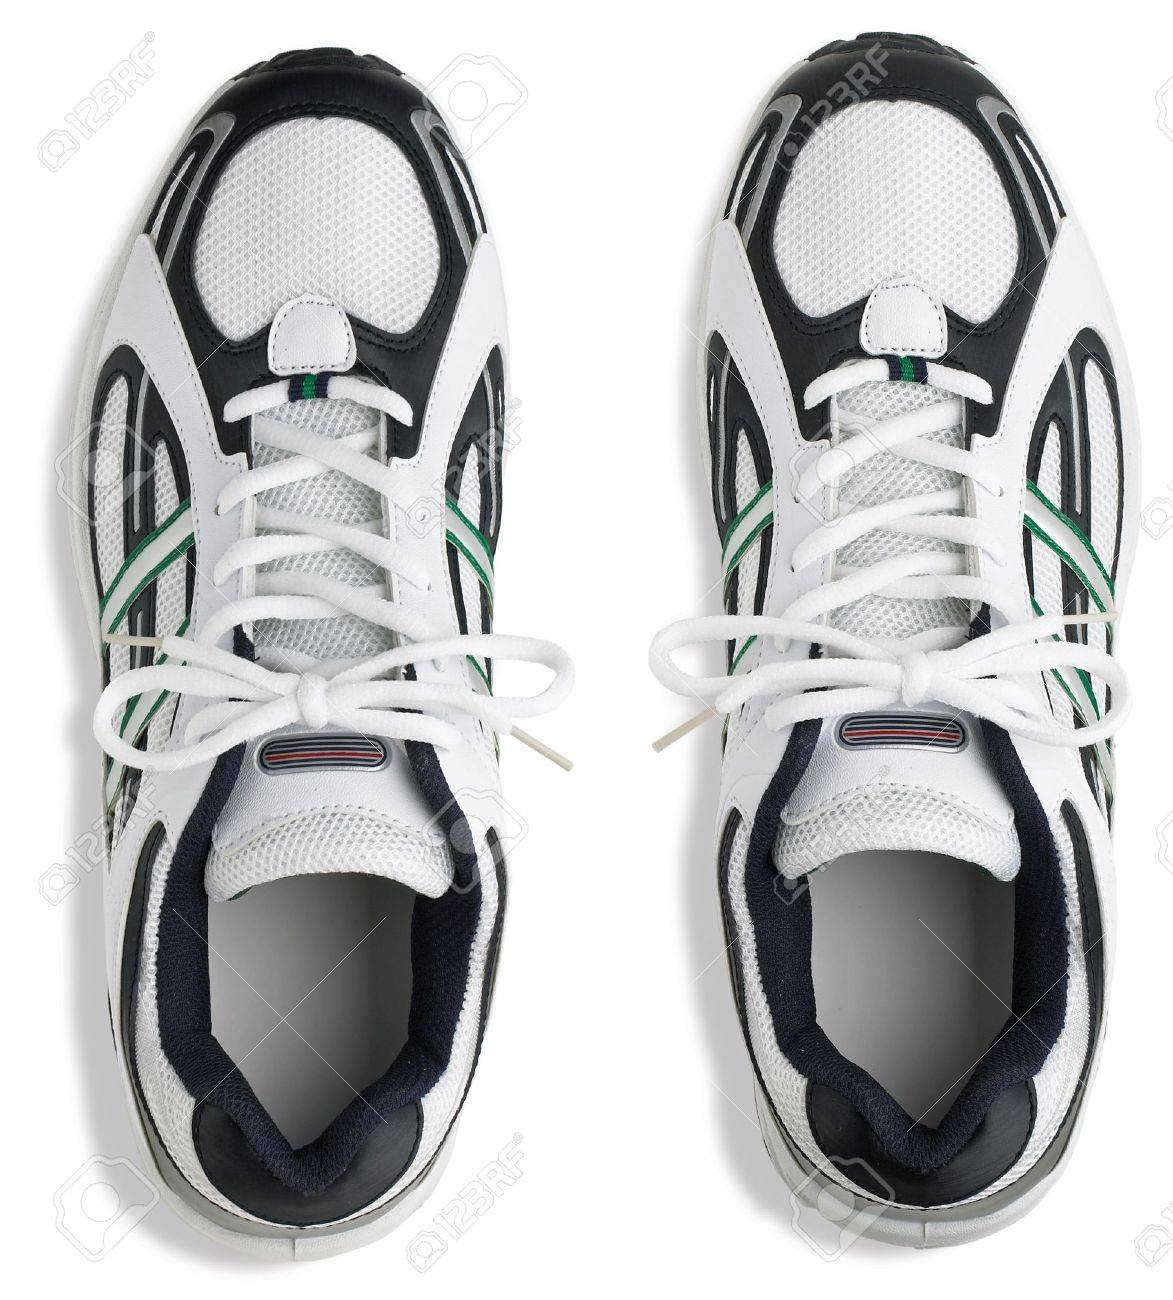 Unbranded Pair Of Running Shoes